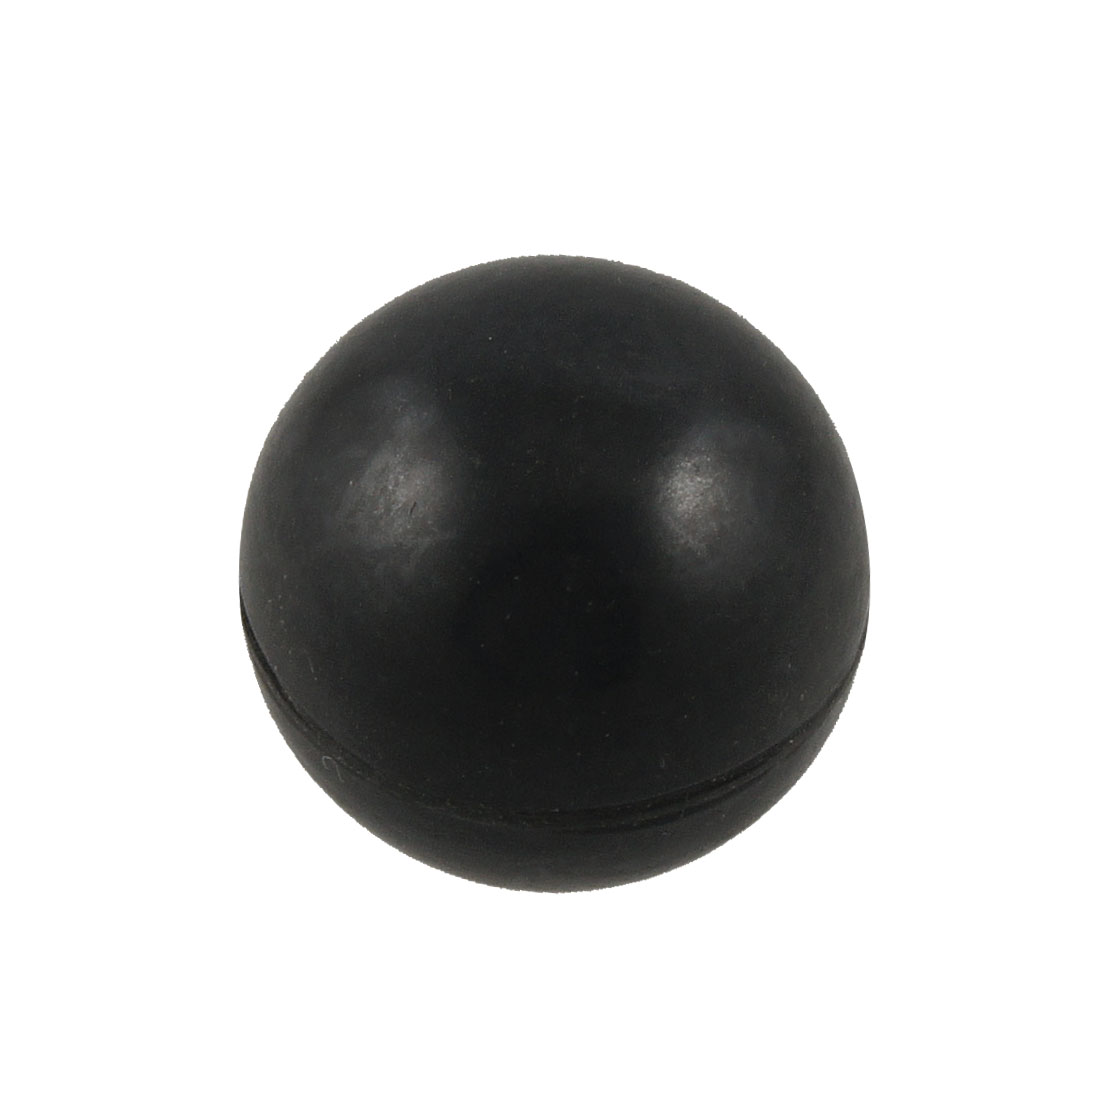 Ball Shaped 10mm Thread Inner Diameter Black Metal Screw Nut